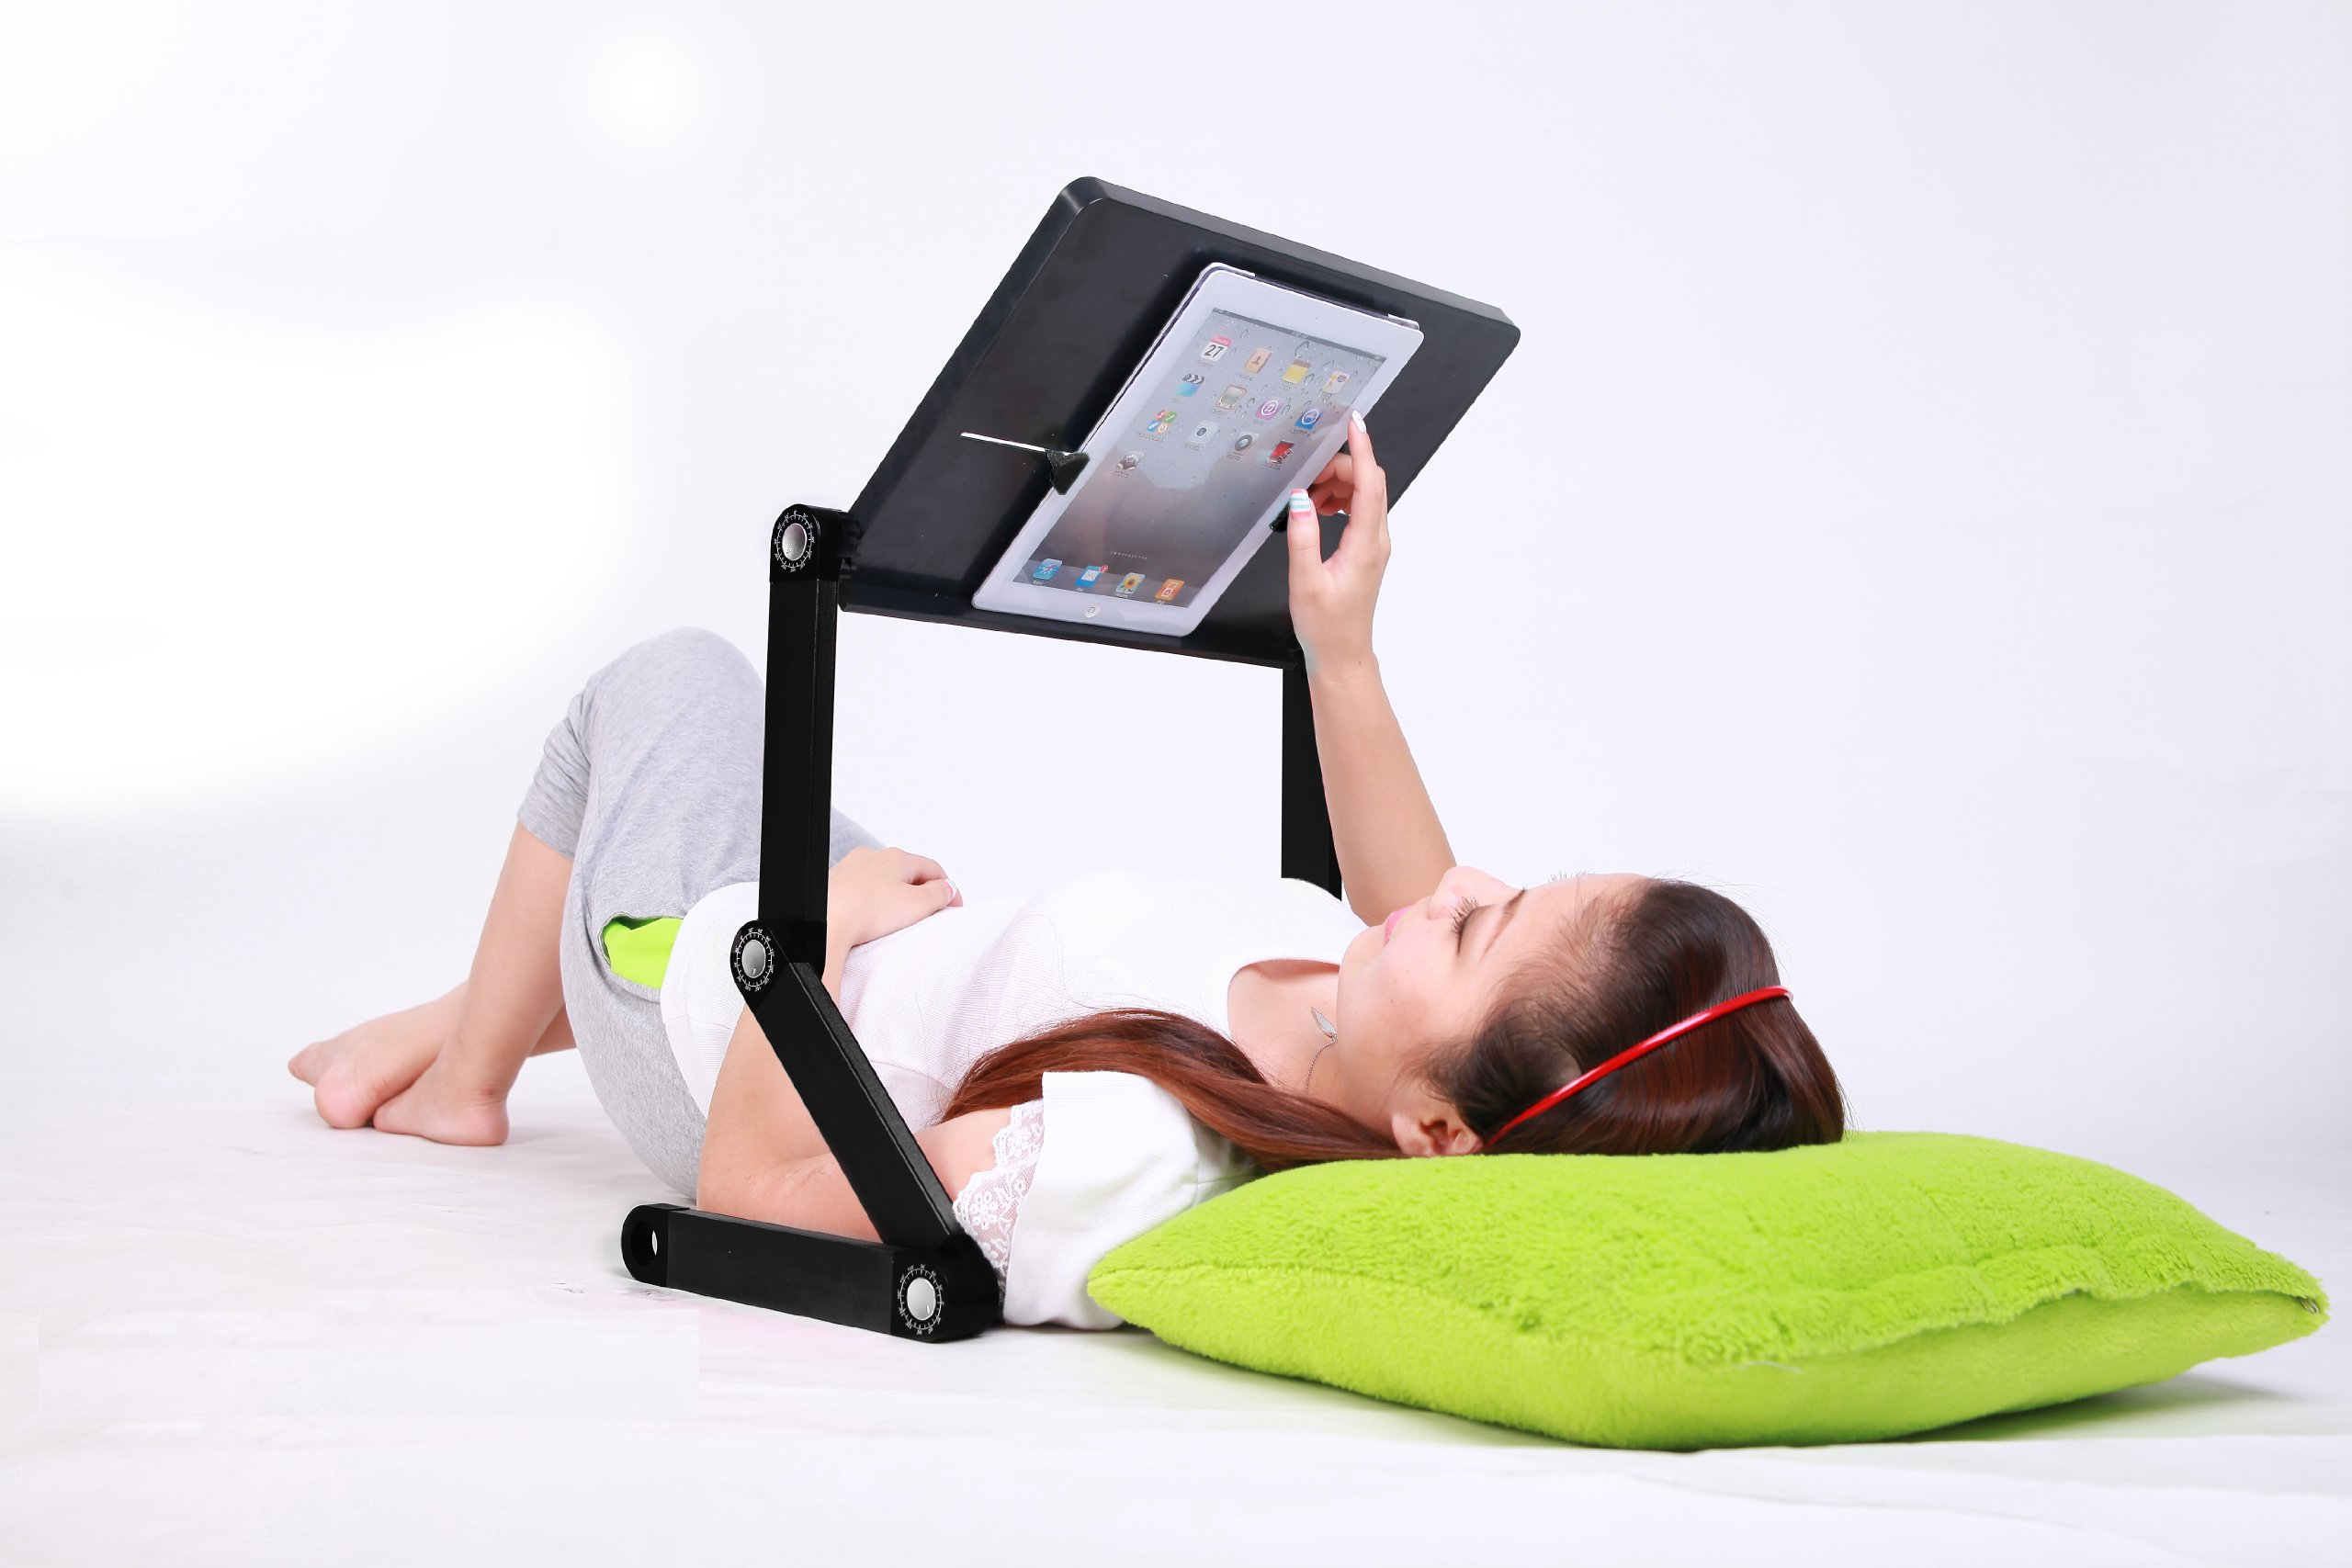 Portable Adjustable Height and Angle Ergonomic Reading Stand, Book holder, Tablet Stand, up to 12'' Laptop Stand, Document Holder, Black by idée (Image #2)